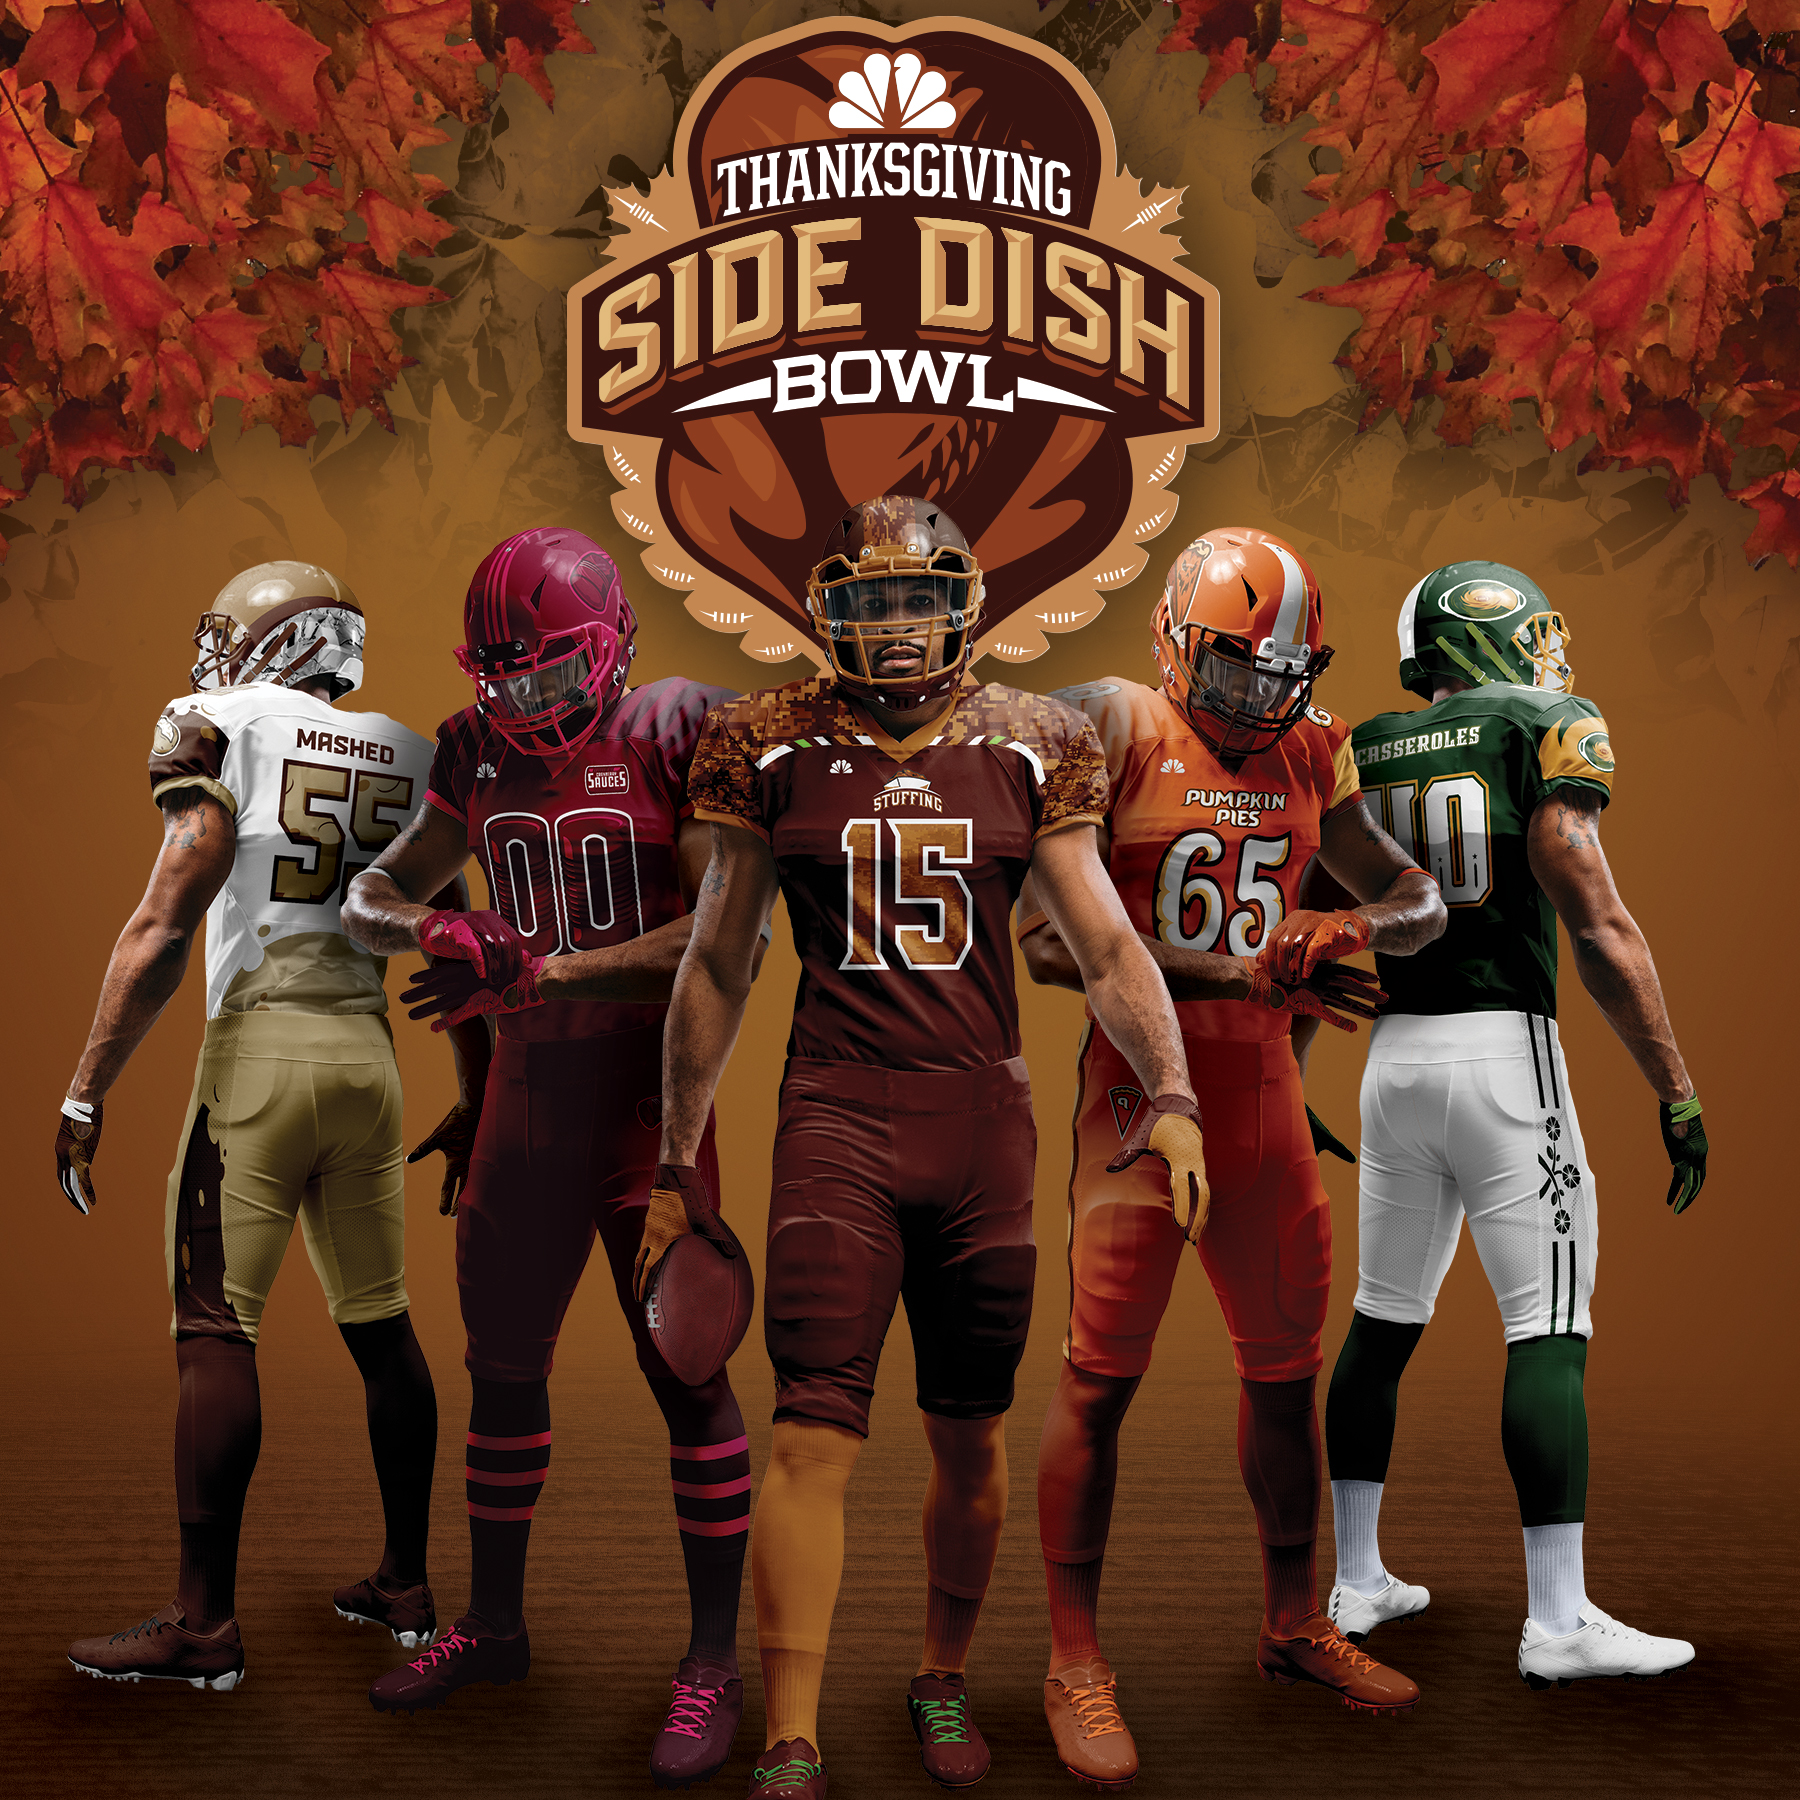 NBC Sports Thanksgiving Side Dish Bowl